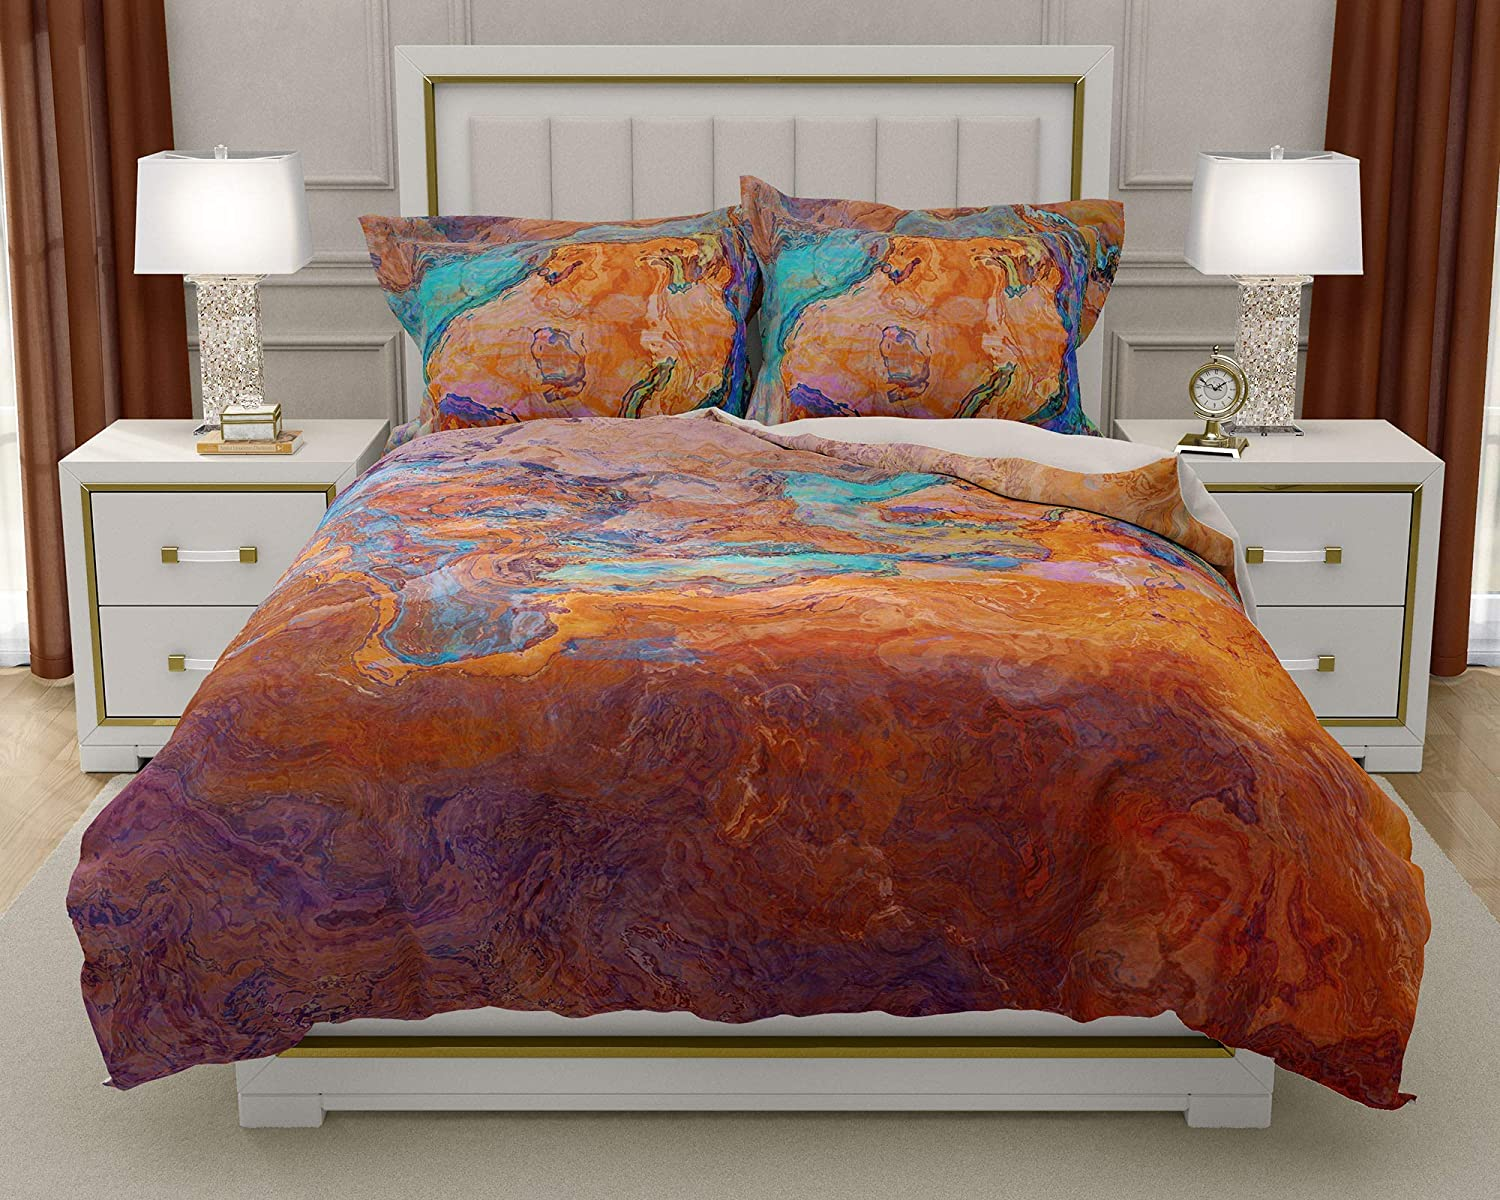 Image of Home and Kitchen King or Queen 3 pc Duvet Cover Set with abstract art, Southwest Archetype